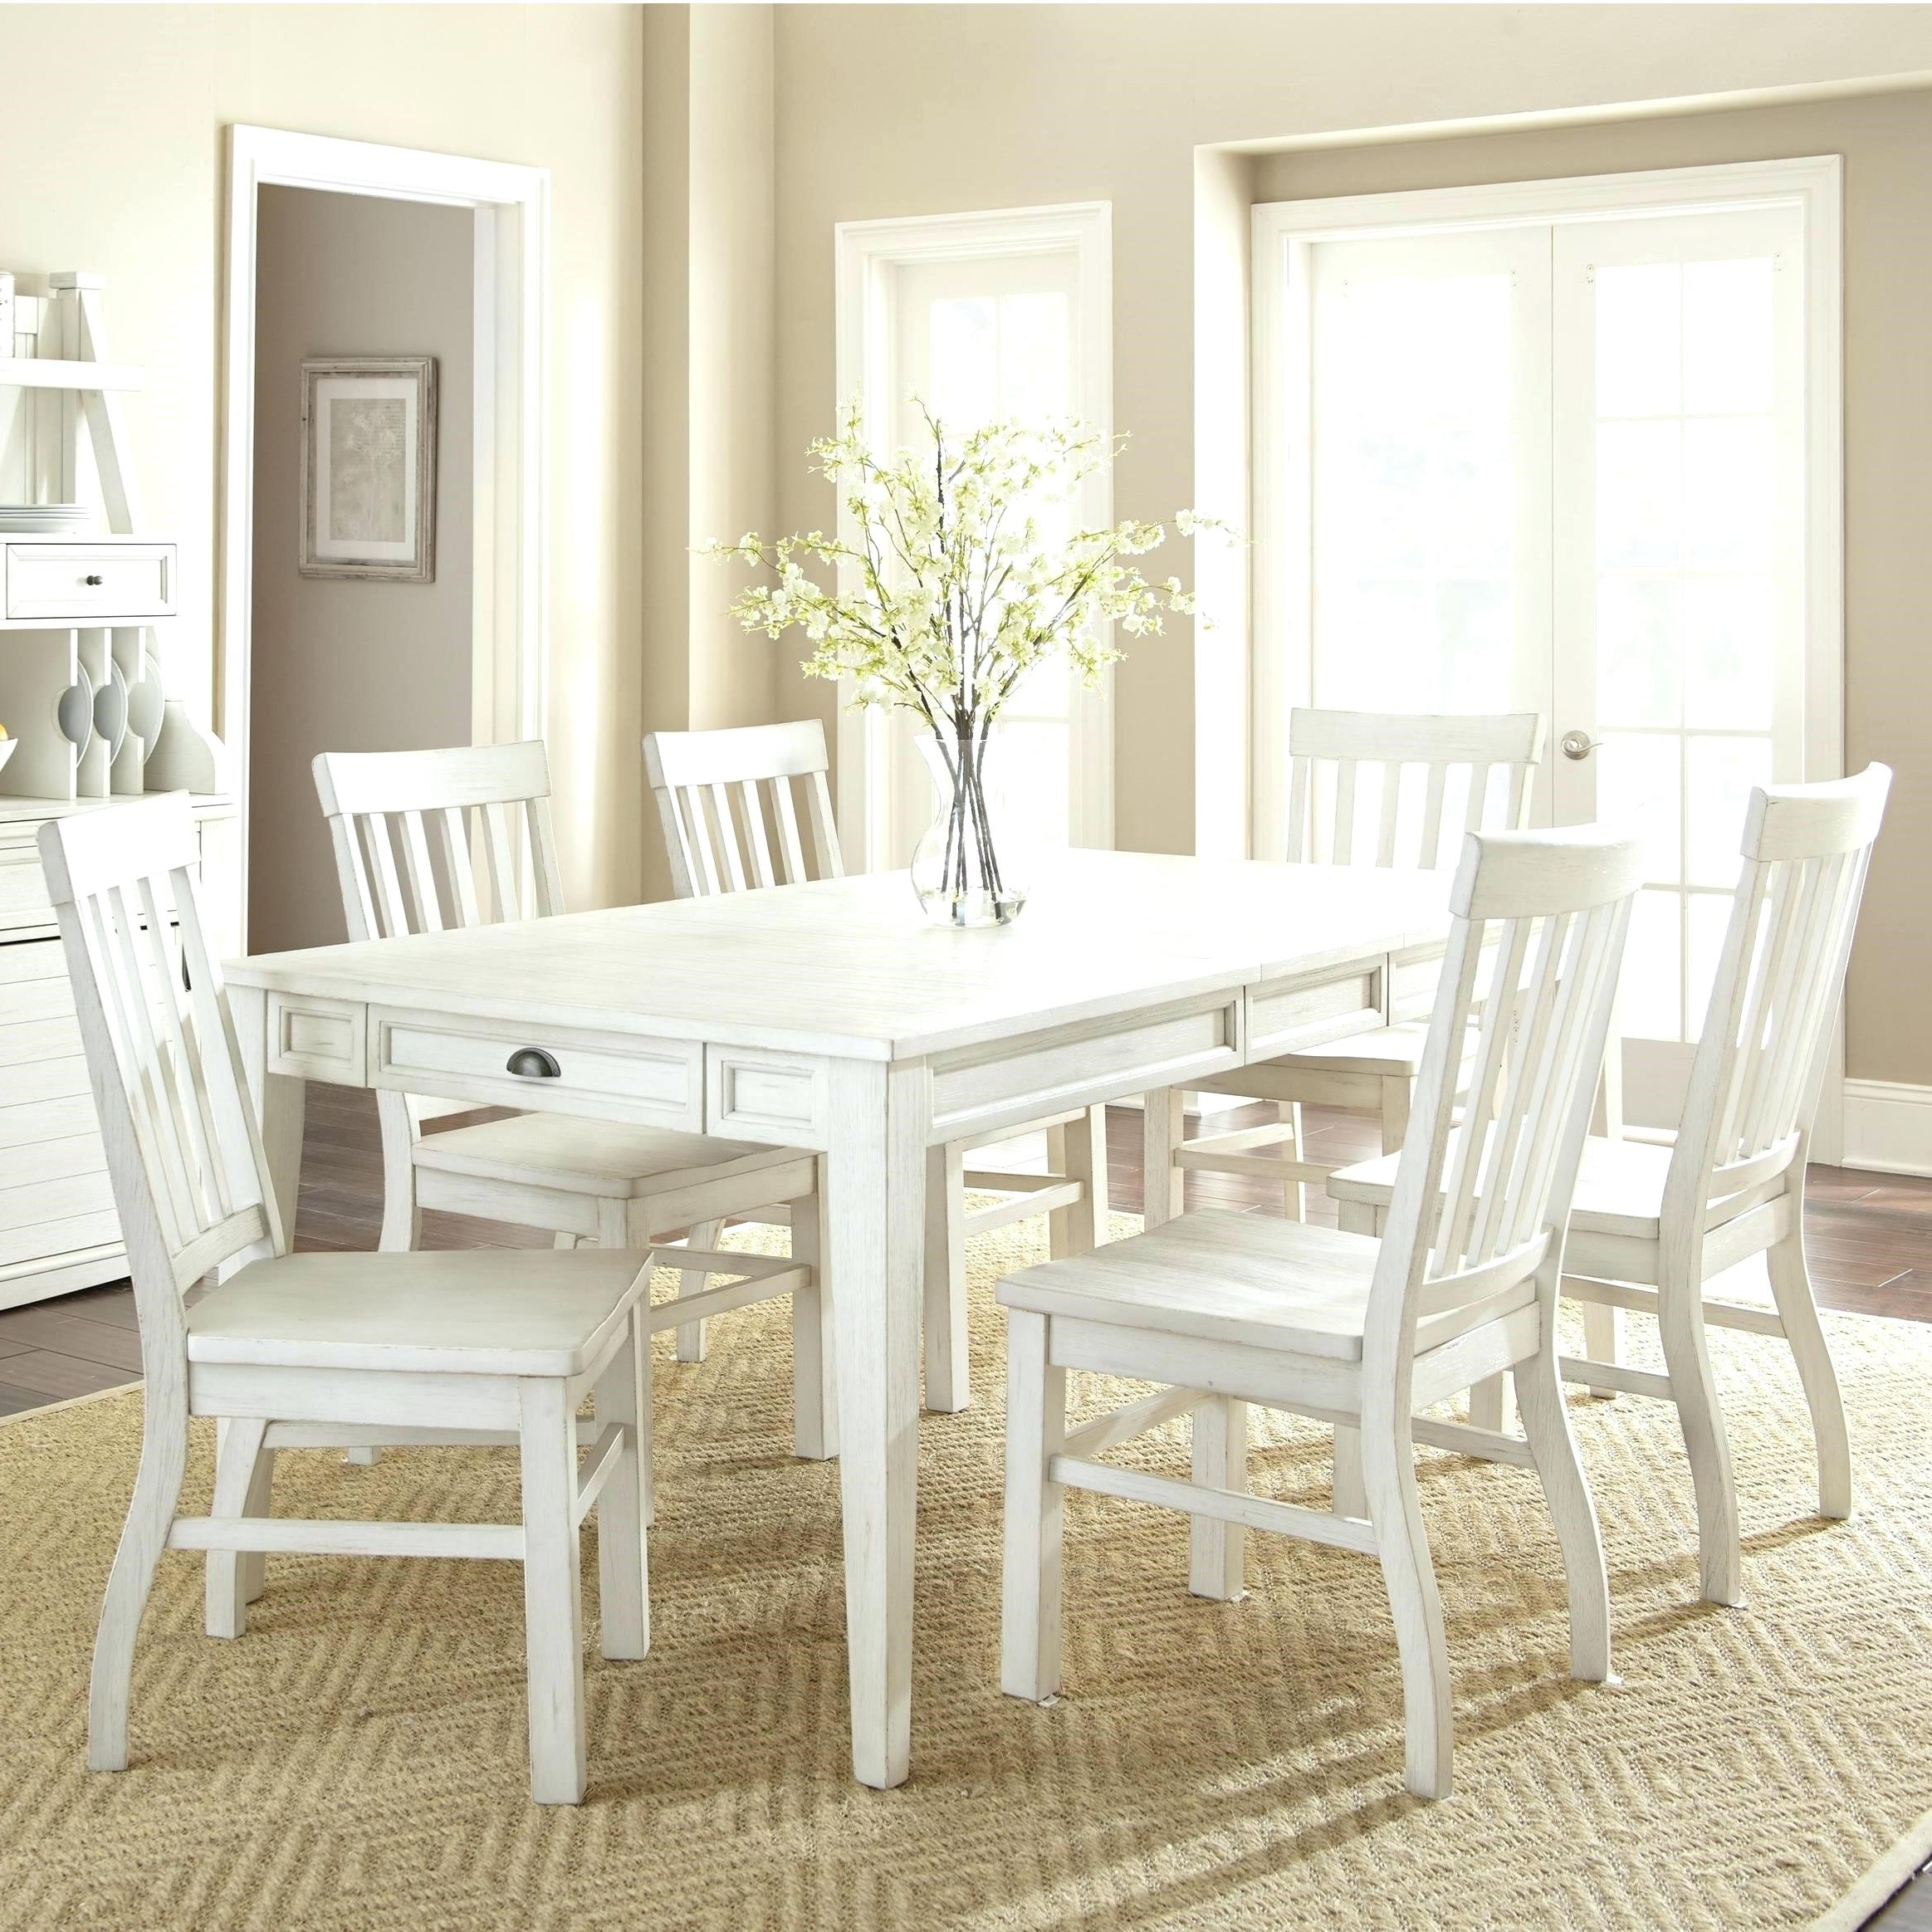 Well Liked 7 Piece Dining Set Under 400 – Positiveimpact (View 24 of 25)